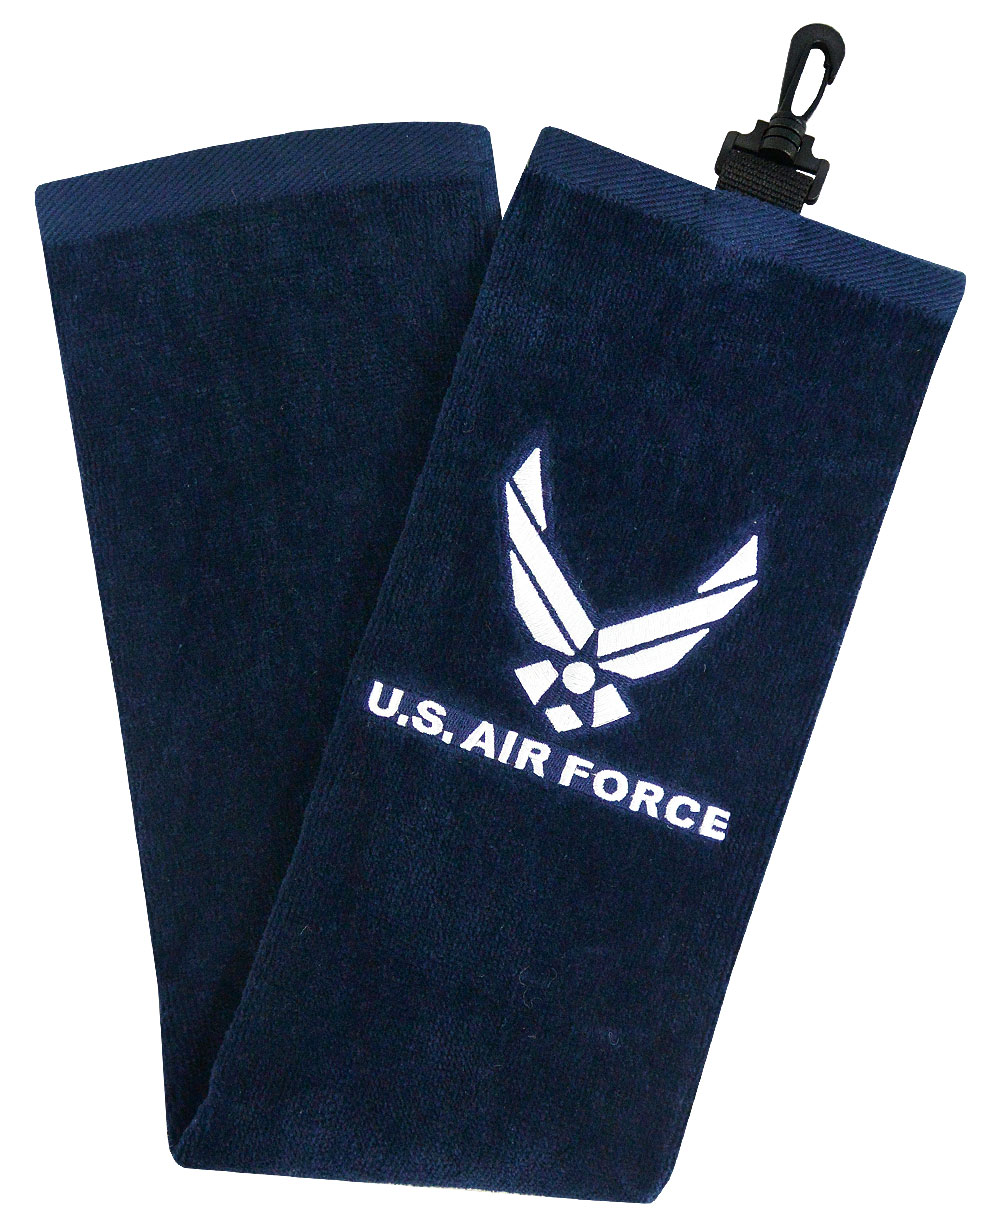 Hot Z Golf Military Tri Fold Towel Us Air Force image